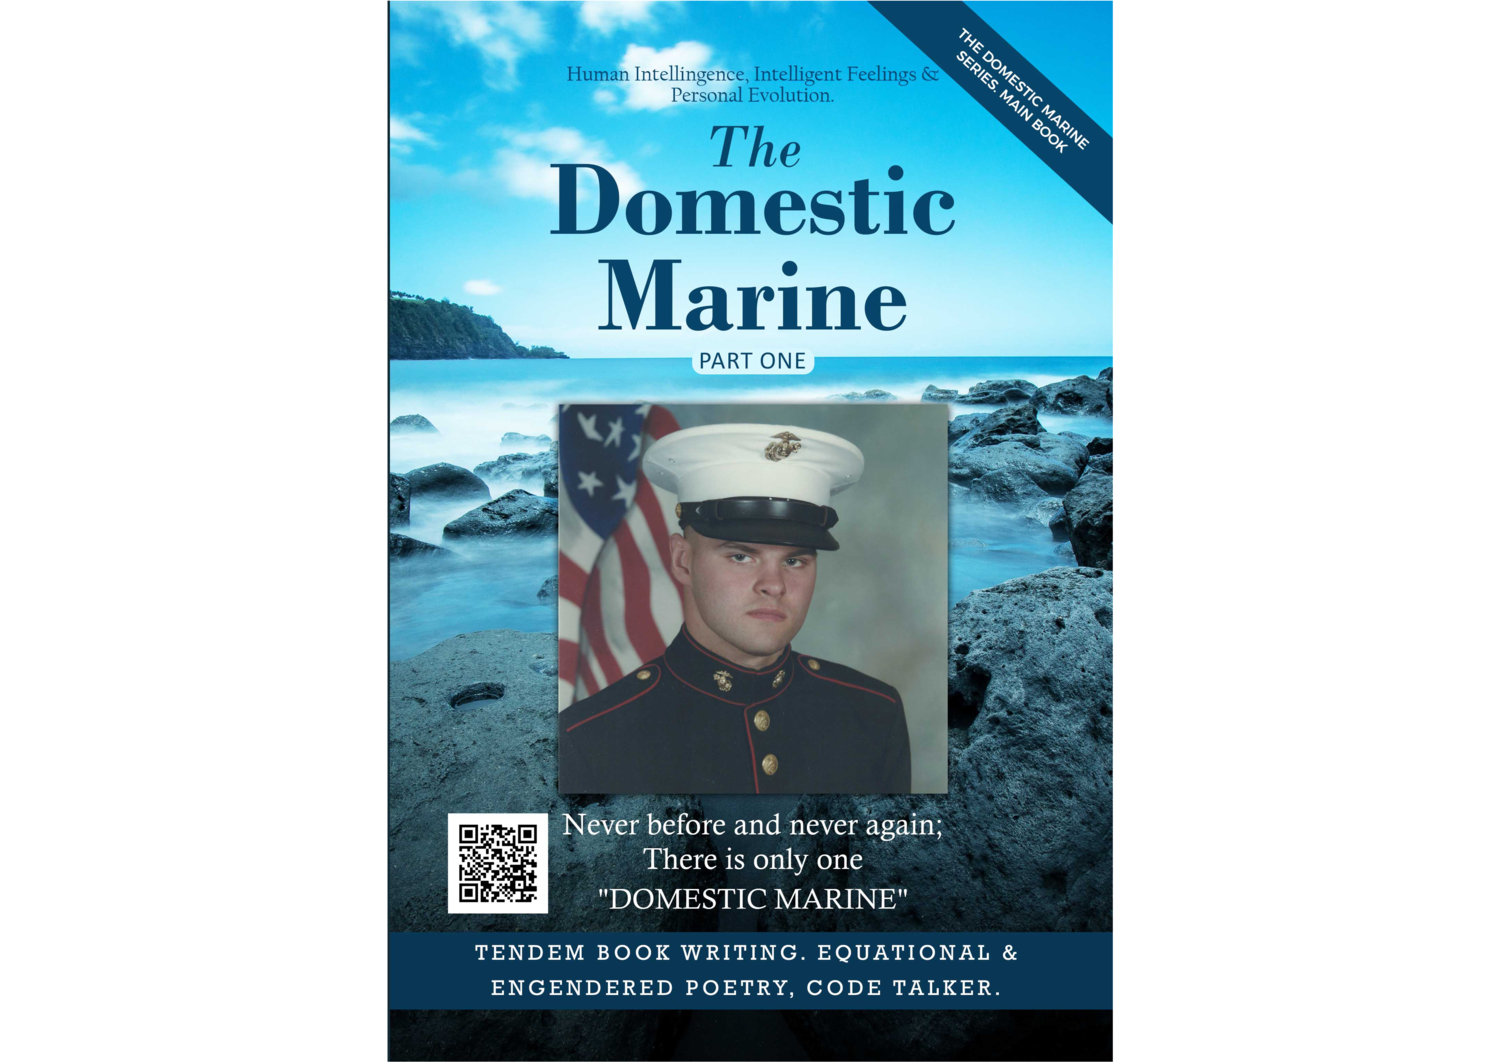 """Book entitled: """"The Domestic Marine"""" (TM) Never before and never again; there is only one """"Domestic Marine"""" (TM)."""